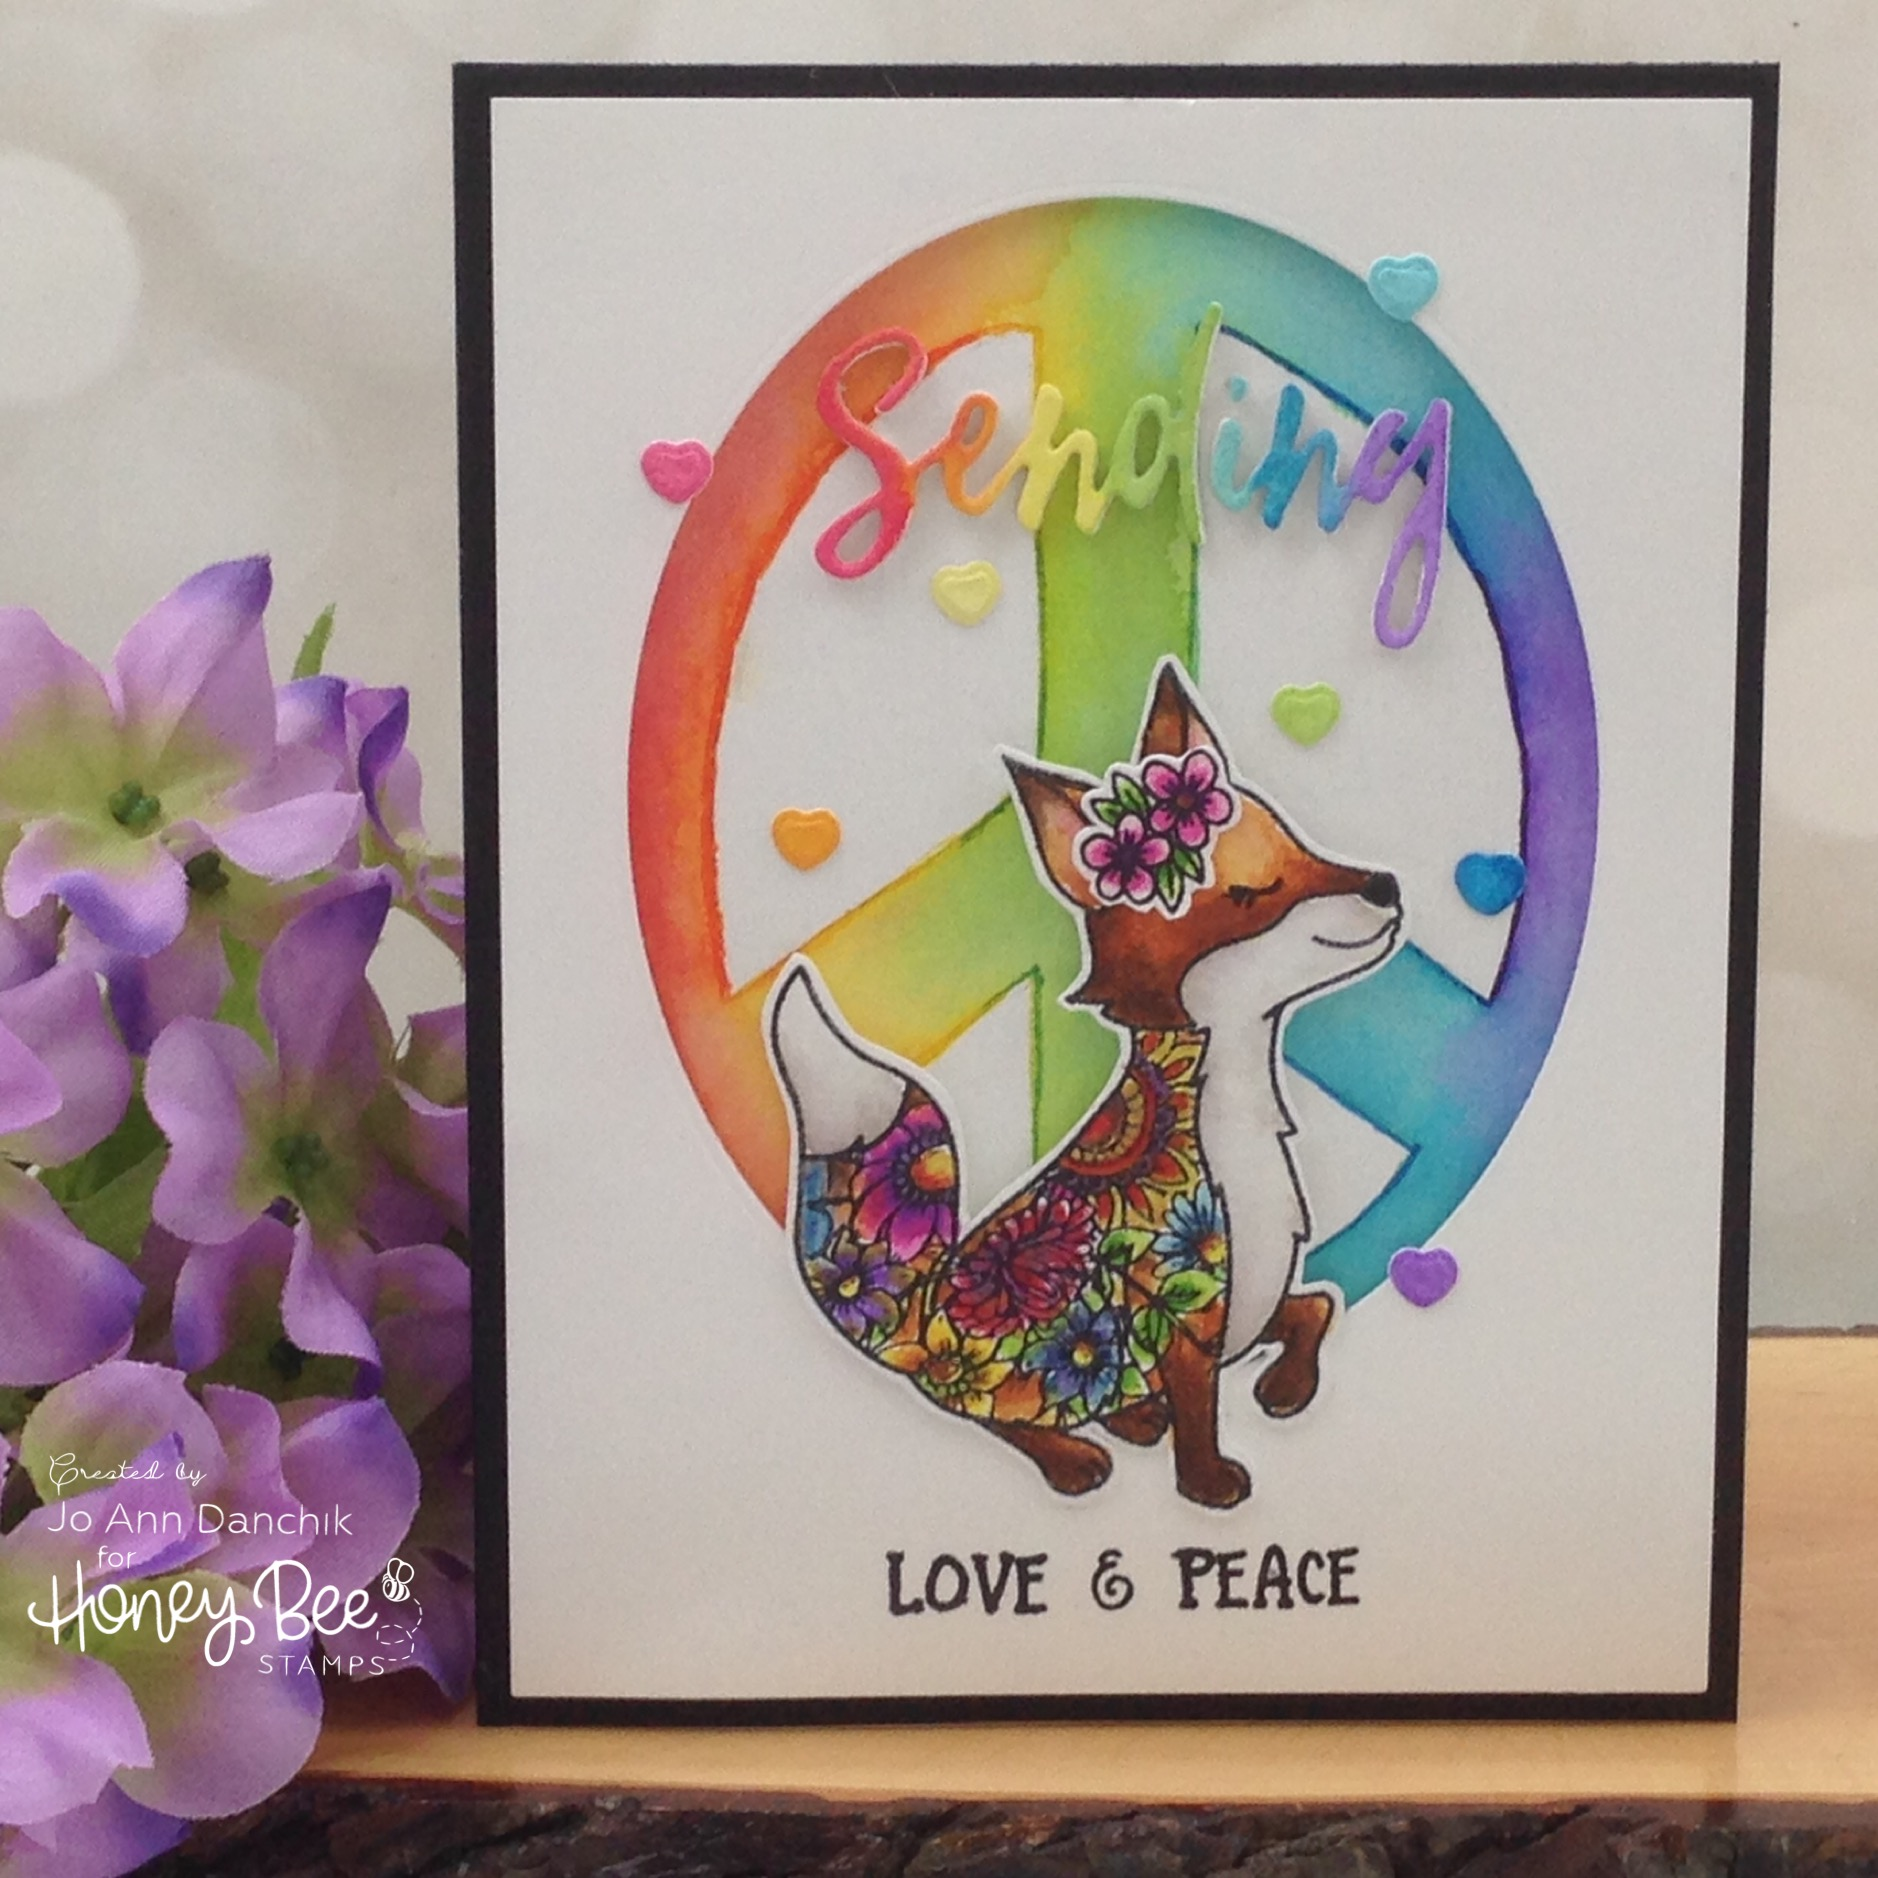 Creative Sundays With Jo Ann: Flower Power Fox